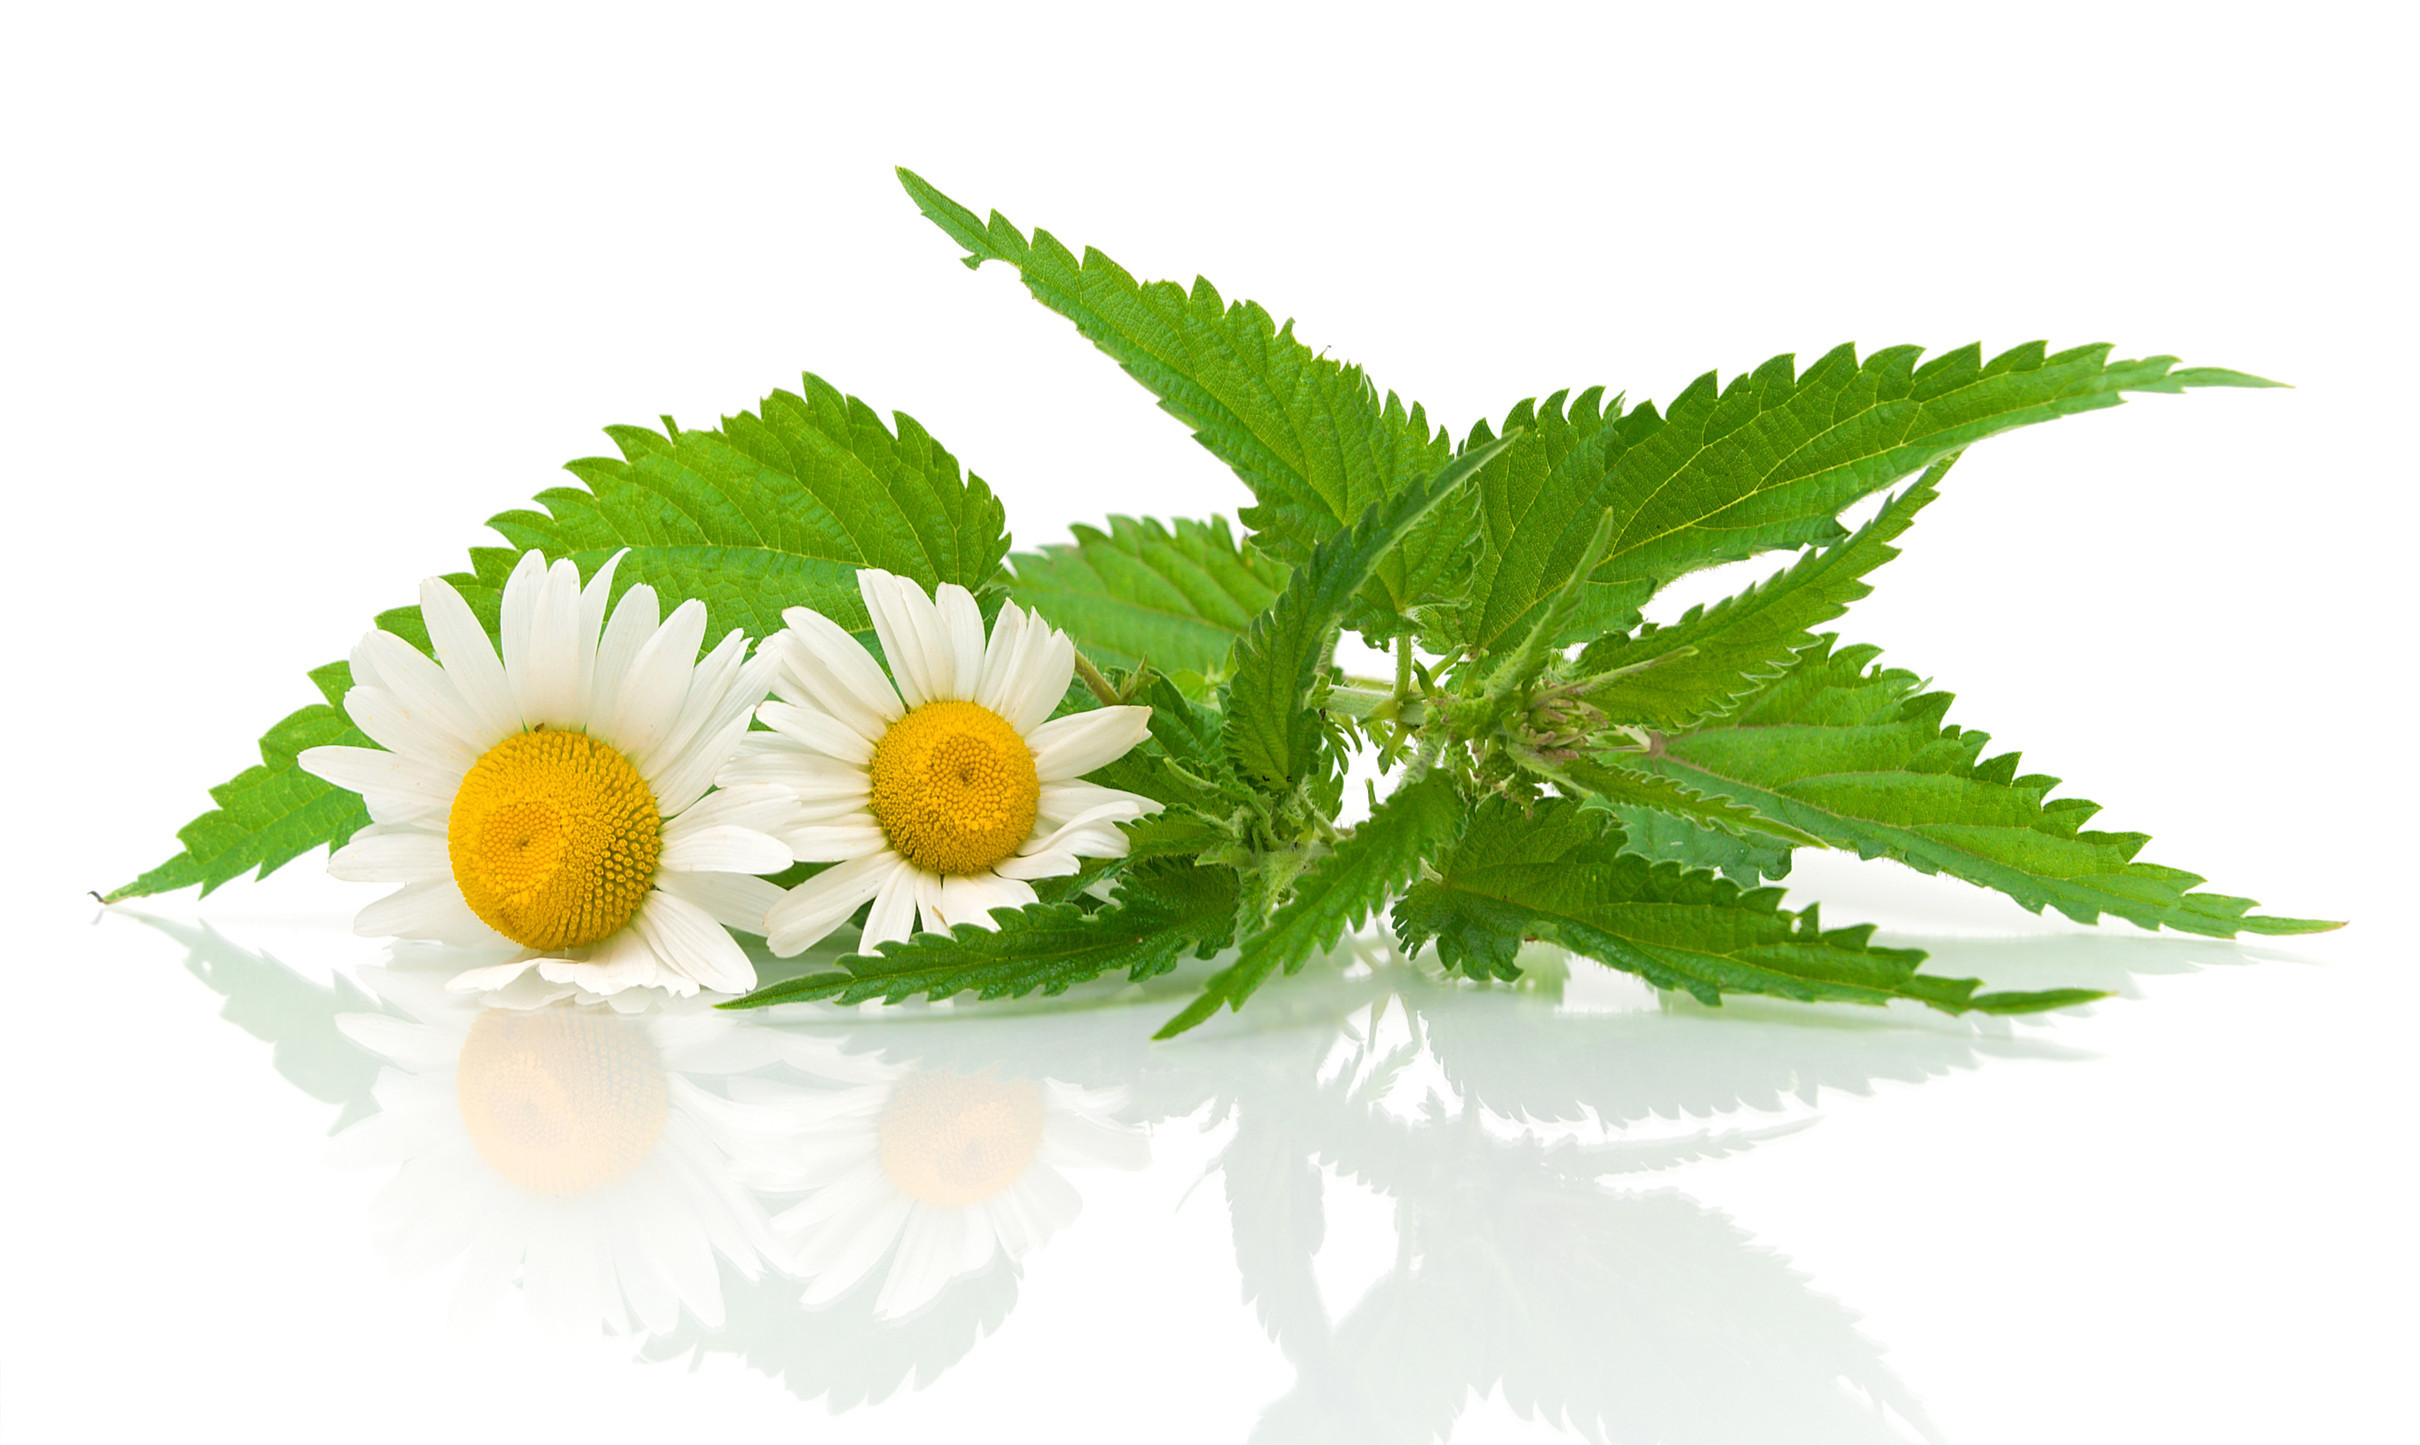 Chamomile Hd Wallpaper